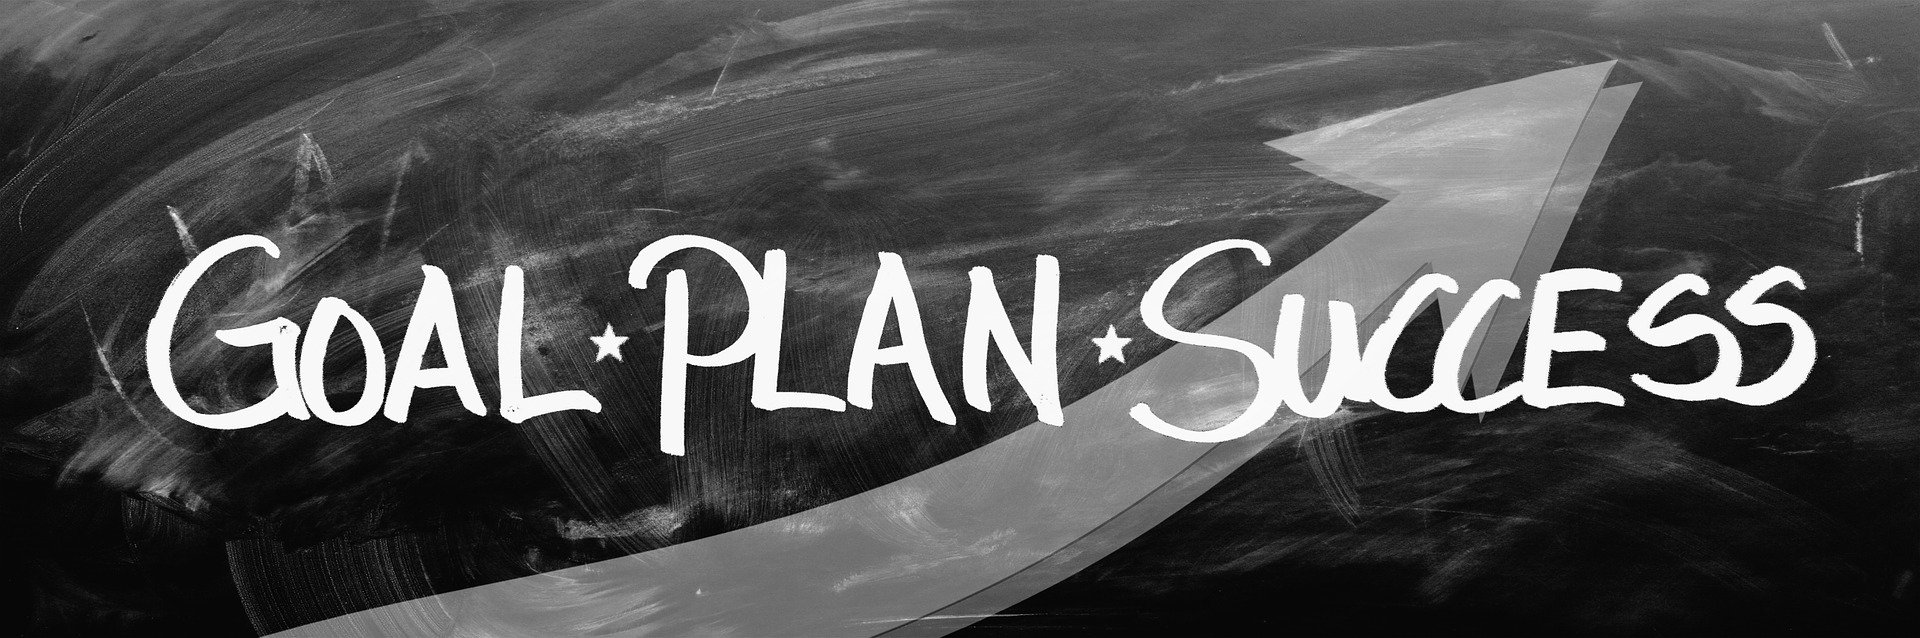 How To Promote A Business Online with a Simple Digital Marketing Plan